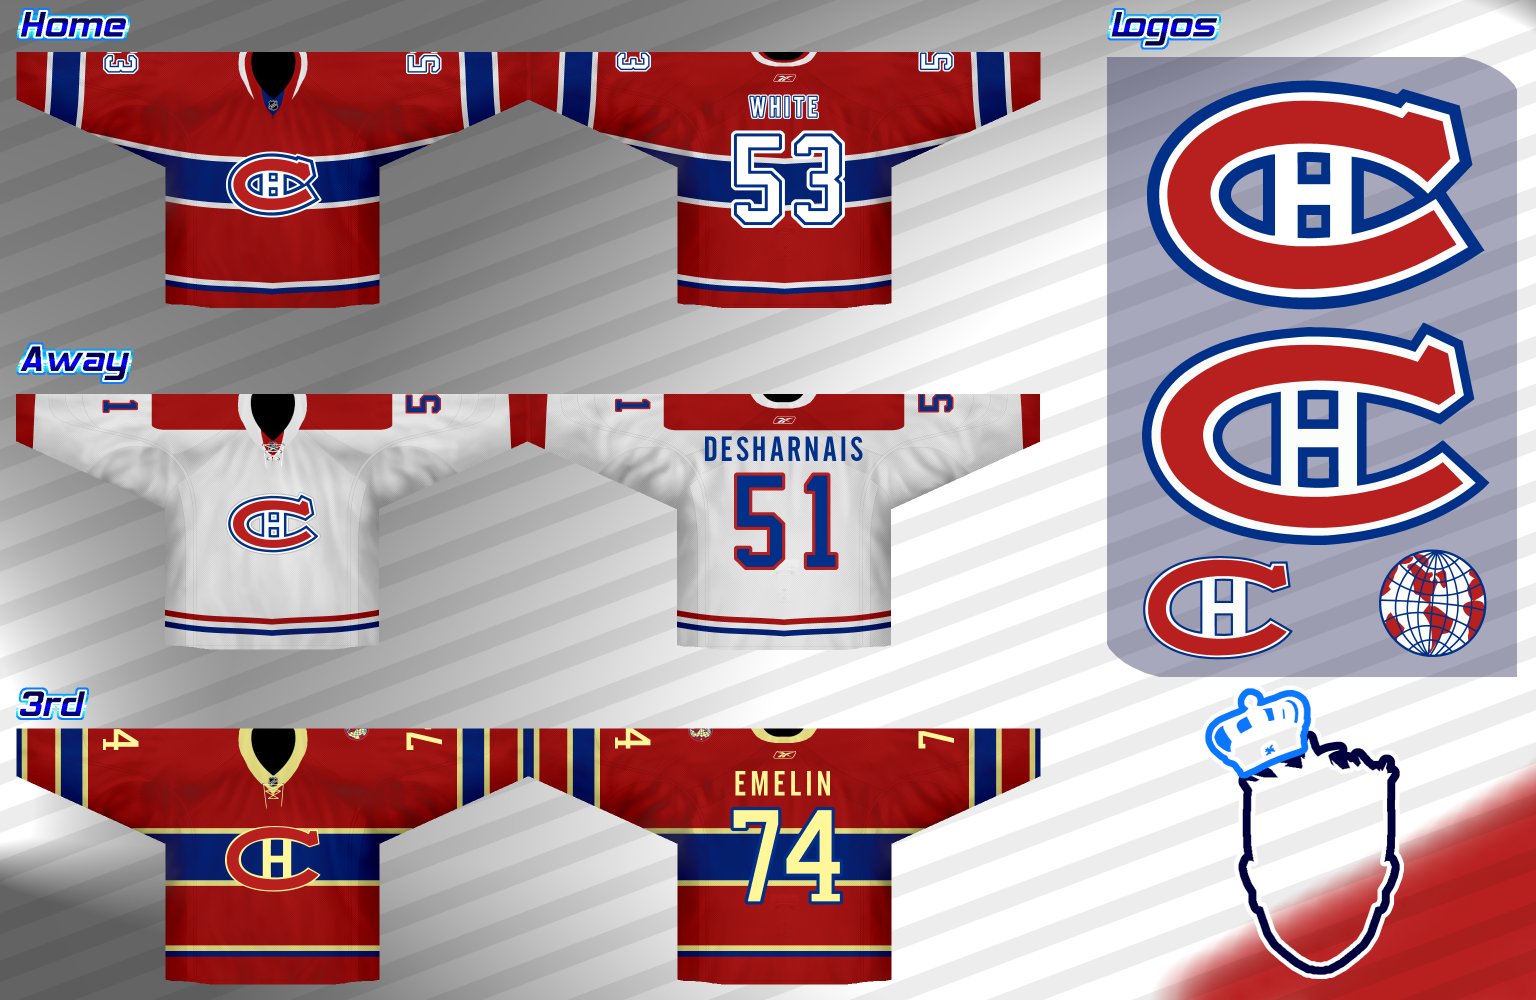 Remodeler la LNH - NHL Redesign - Montreal Canadiens